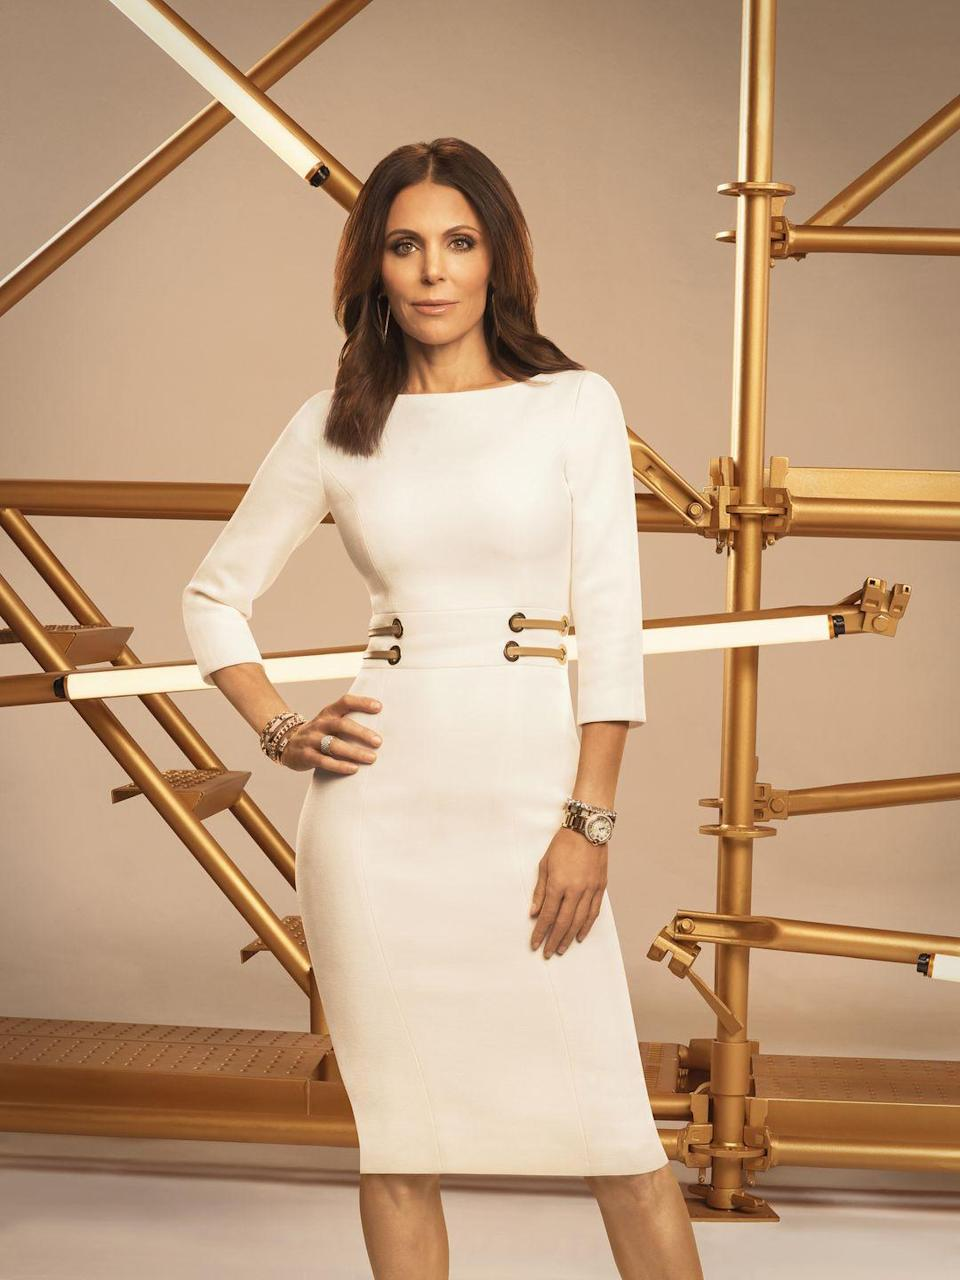 """<p>Bethenny Frankel is another Housewife who has left the show twice. The original <em>New York City</em> Housewife first left after season 4 to film her spinoff series, <em>Bethenny Getting Married.</em> She returned to <em>Housewives</em> in season 7 for a 5-year run and called it quits (for good, this time) ahead of season 12. """"I have decided to leave the <em>Housewives</em> franchise to explore my next chapter,"""" Bethenny, 48, said in a statement to <em><a href=""""https://people.com/tv/bethenny-frankel-is-leaving-the-real-housewives-of-new-york-city/"""" rel=""""nofollow noopener"""" target=""""_blank"""" data-ylk=""""slk:People"""" class=""""link rapid-noclick-resp"""">People</a></em>. """"It's time to move on and focus on my daughter, my philanthropy and producing and starring in shows which represent a shift in the conversation for women."""" Bethenny's time on the show led to the enormous success of her entrepreneurial and philanthropic efforts.</p>"""